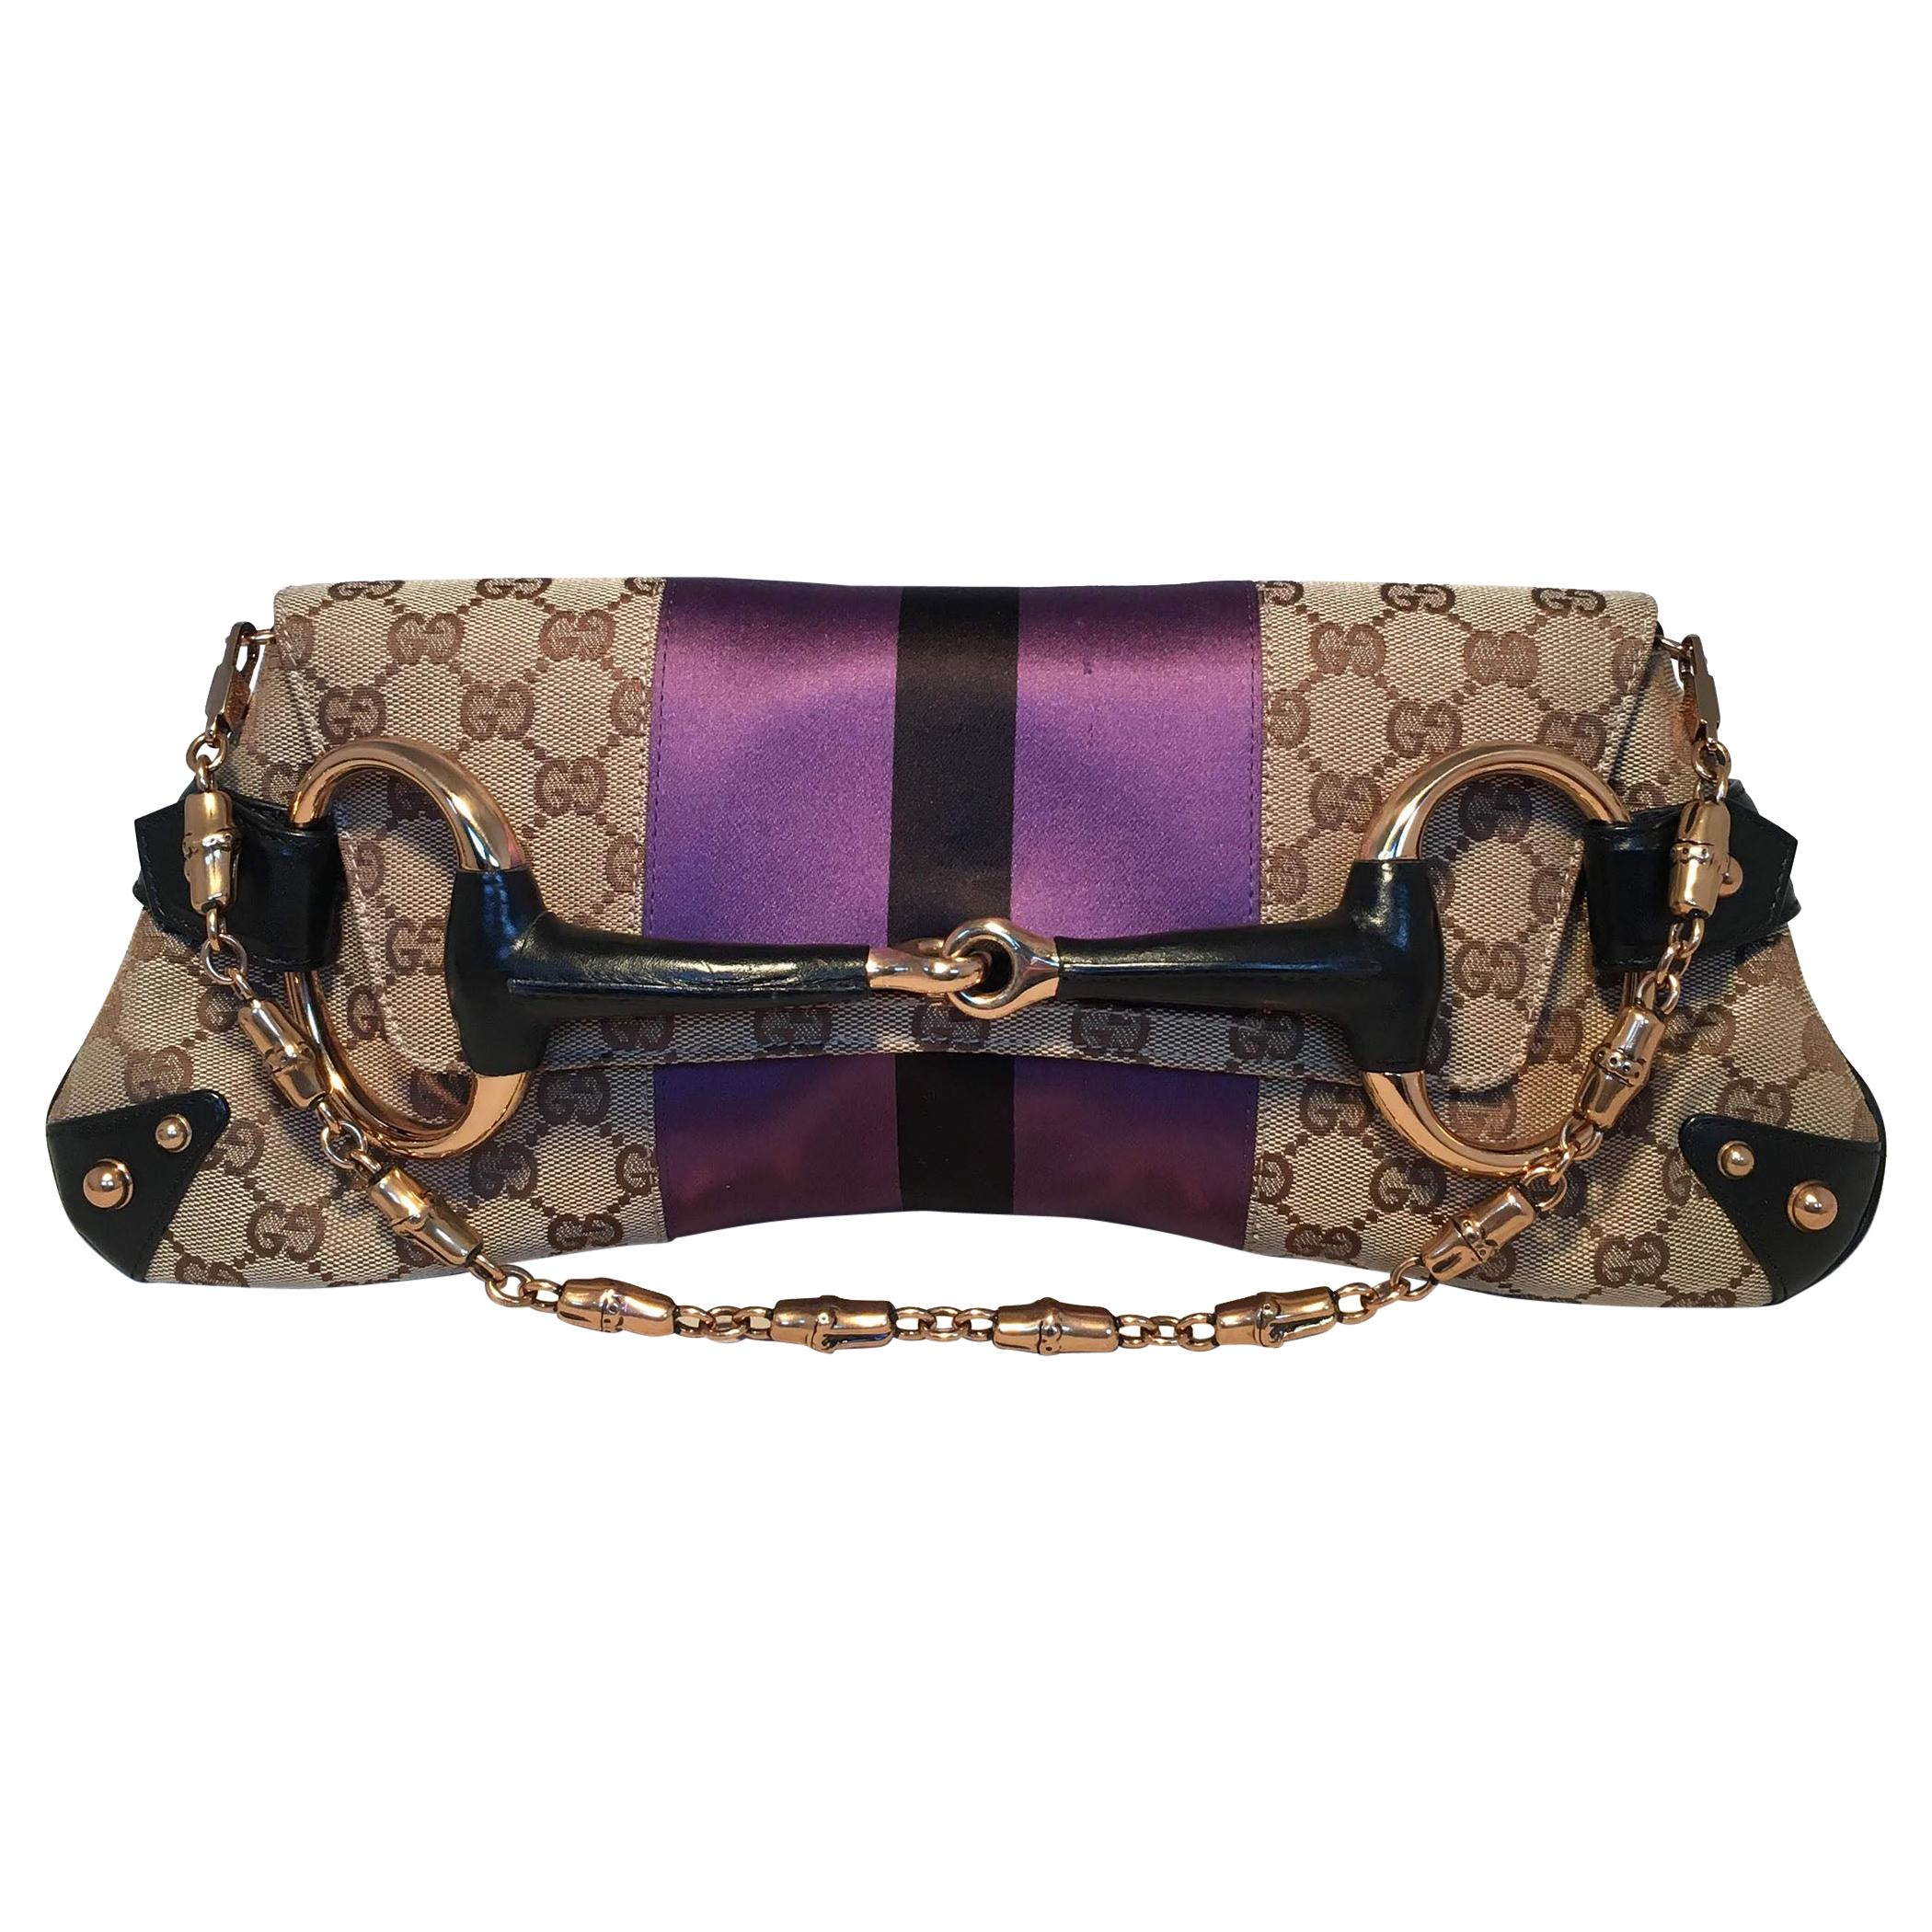 c2e79652fd Vintage Gucci Handbags and Purses - 2,201 For Sale at 1stdibs